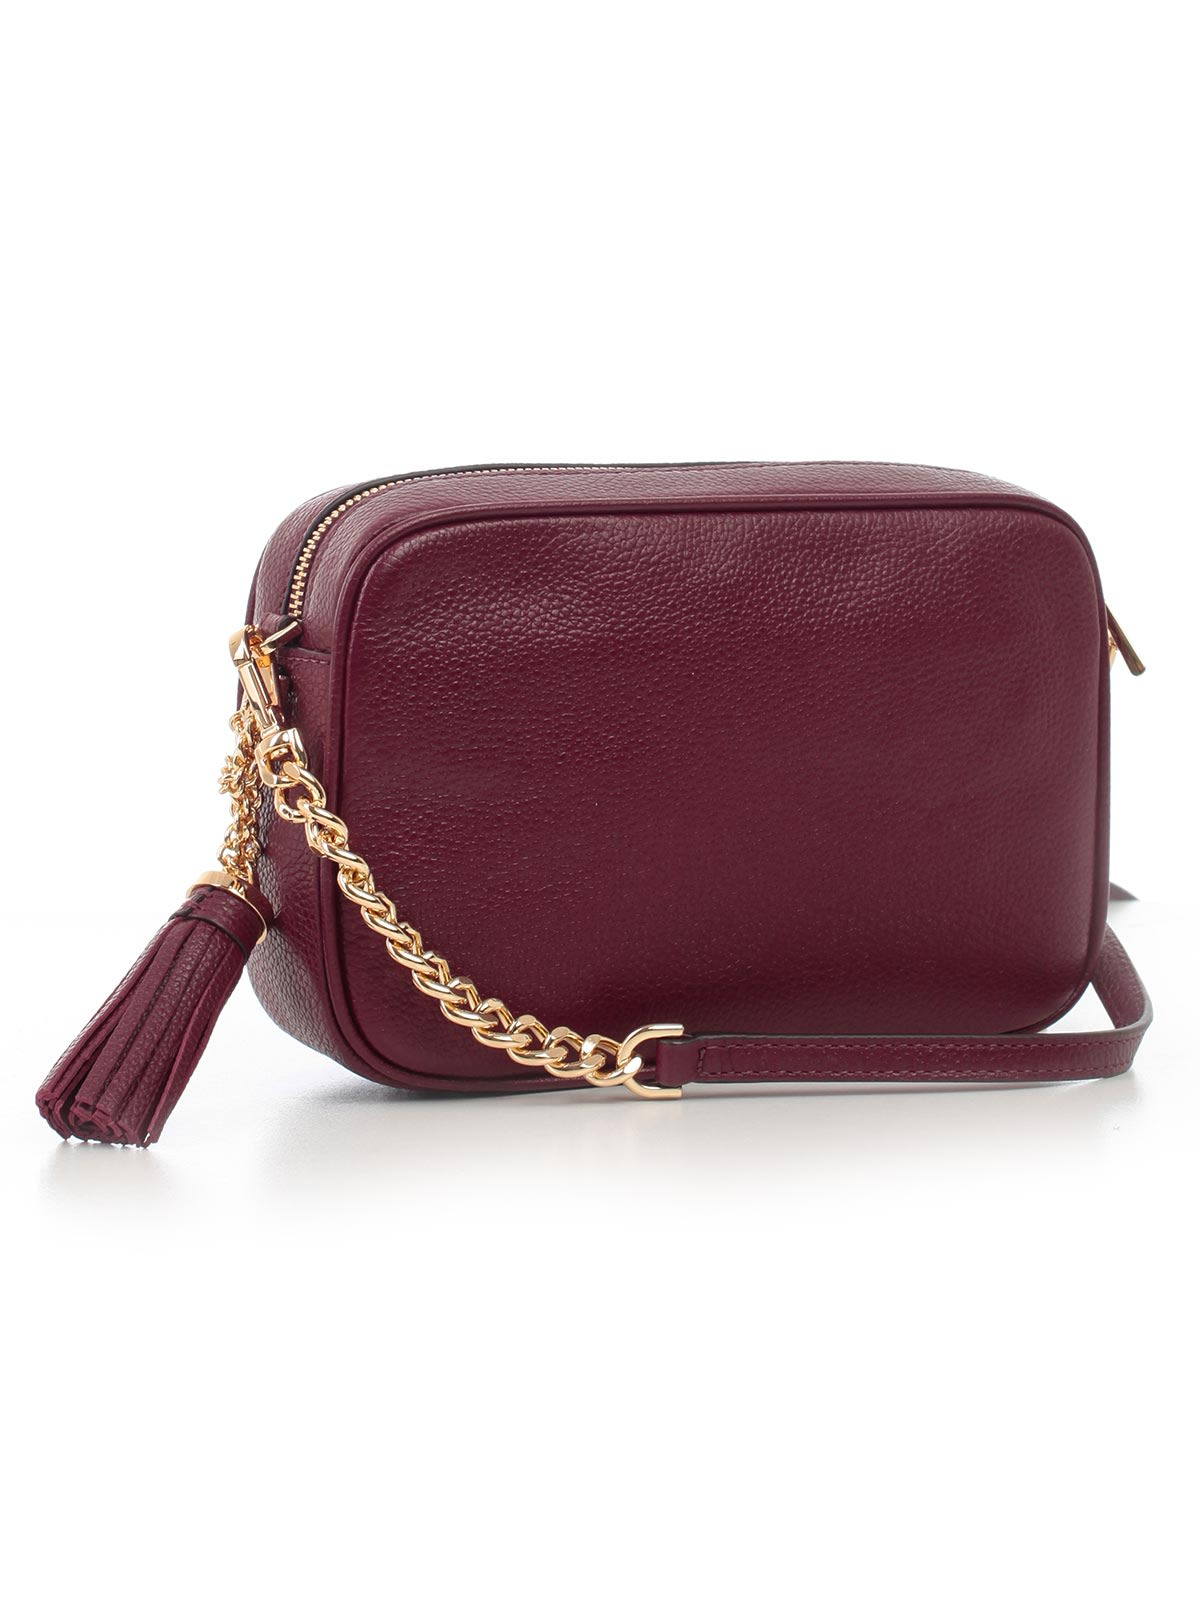 c7e2cfba9994 ... MICHAEL Michael Kors Ginny Medium Camera Shoulder Bag - Oxblood ...